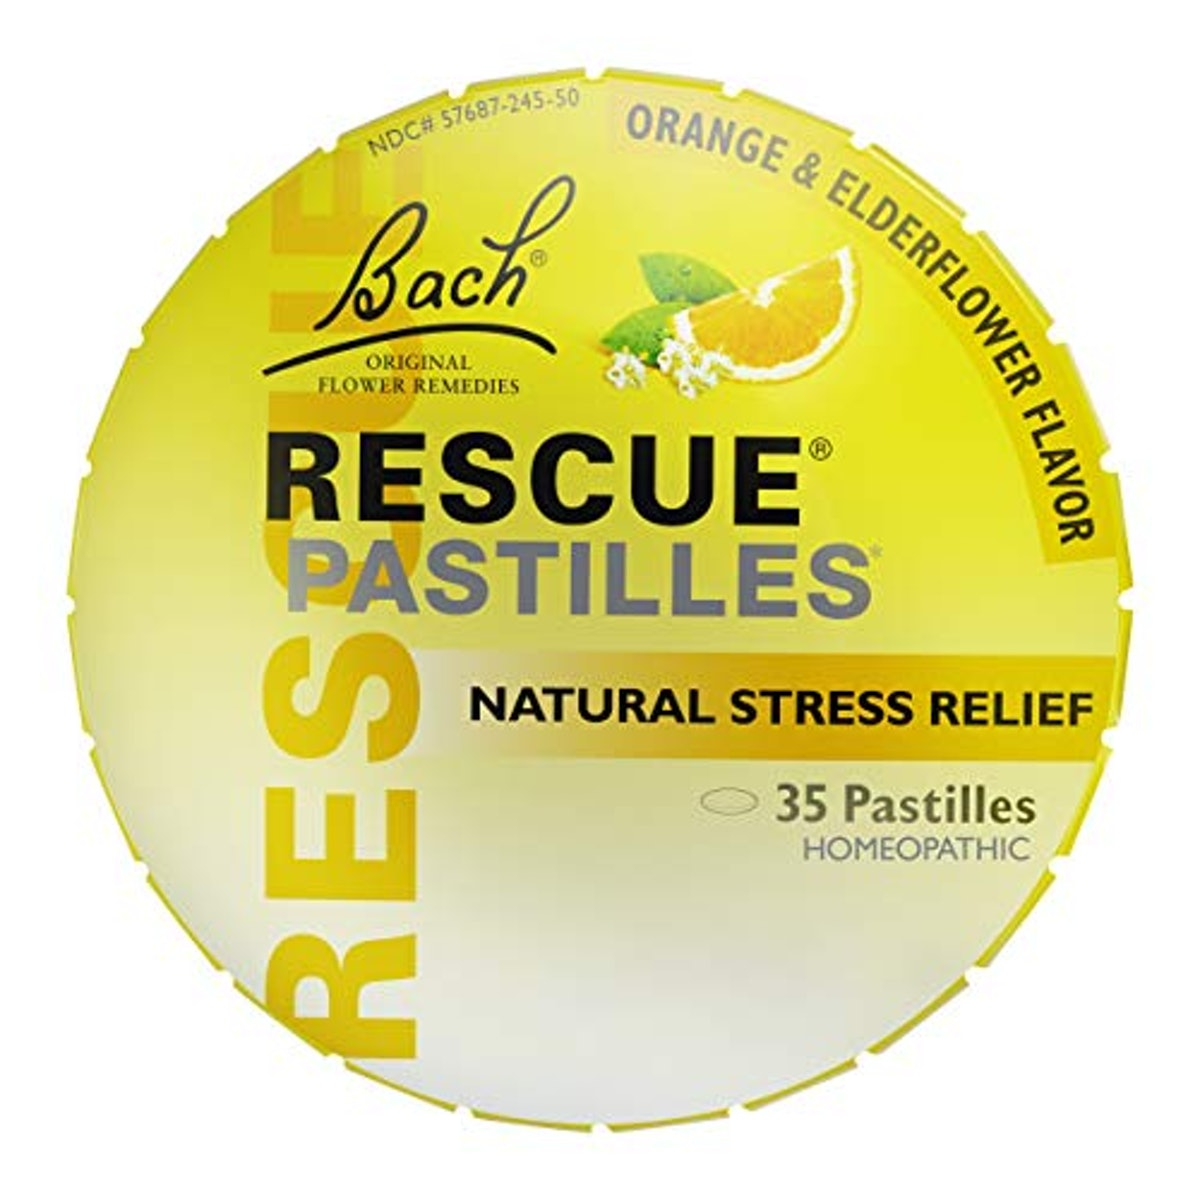 Nelson Bach USA Ltd RESCUE PASTILLES, Homeopathic Stress Relief